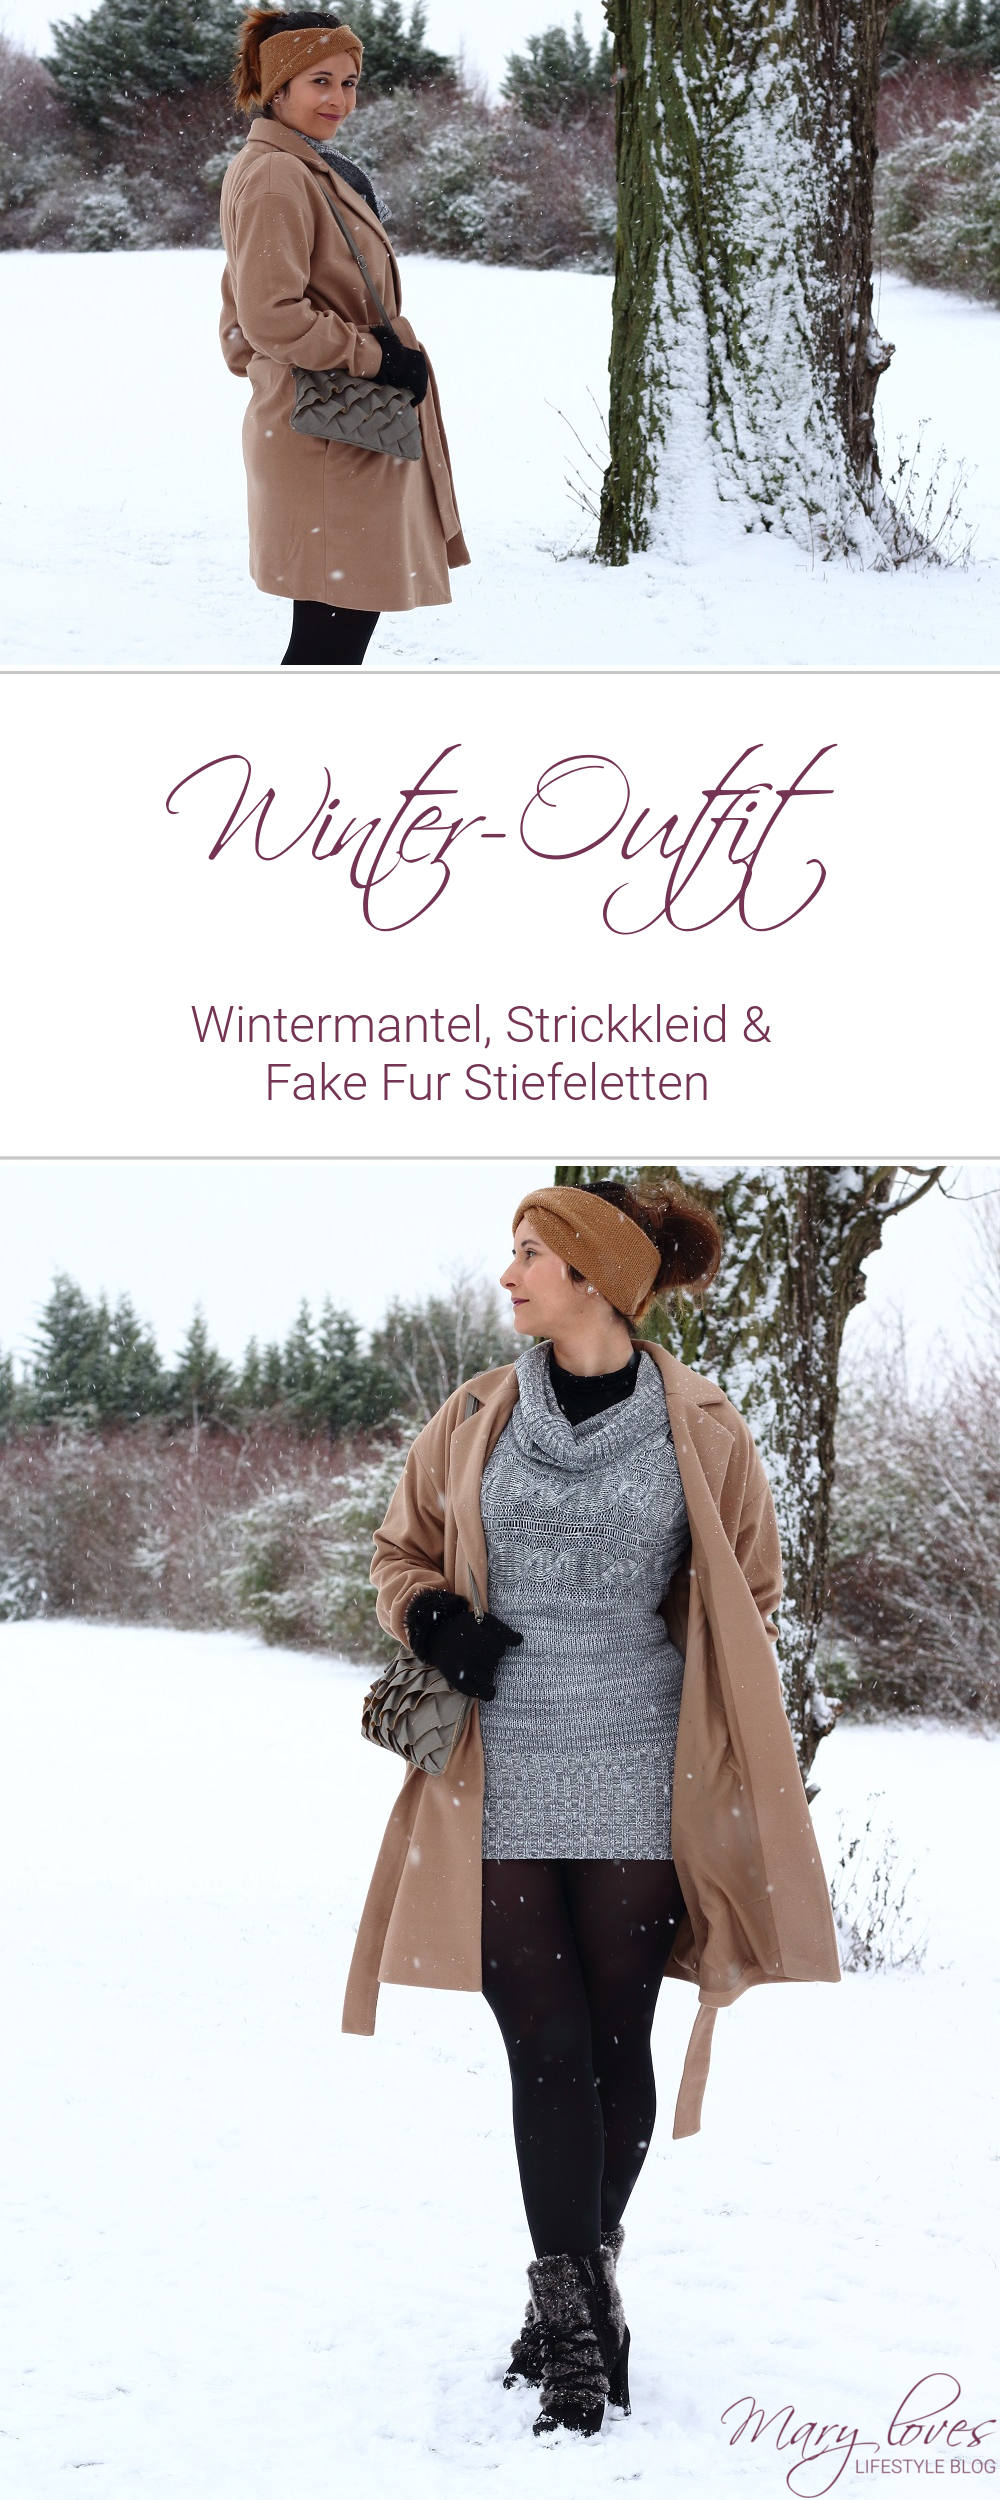 [Winter-Outfit] Wintermantel, Strickkleid und Tamaris Fake Fur Stiefeletten